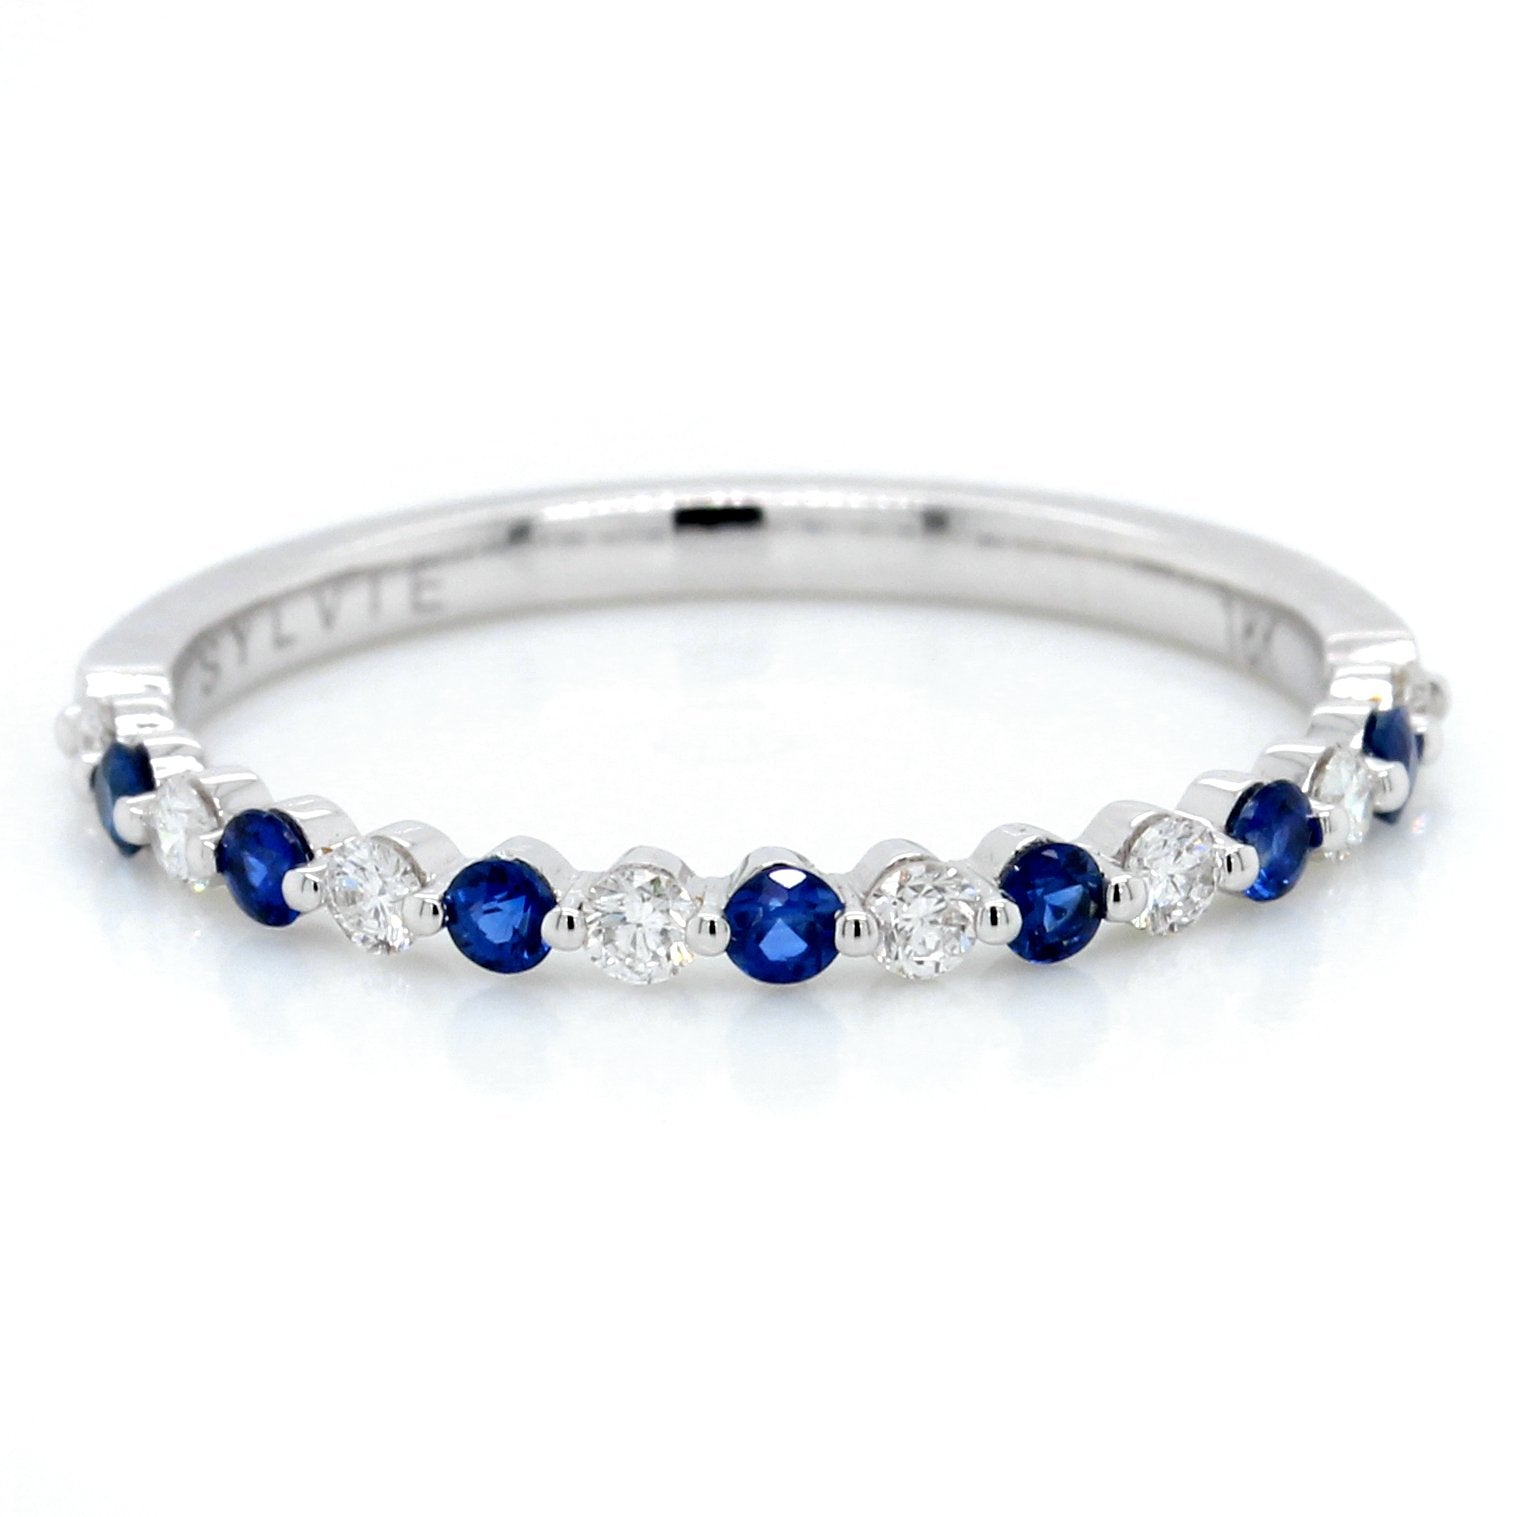 18K White Gold Alternating Sapphire and Diamond Ring